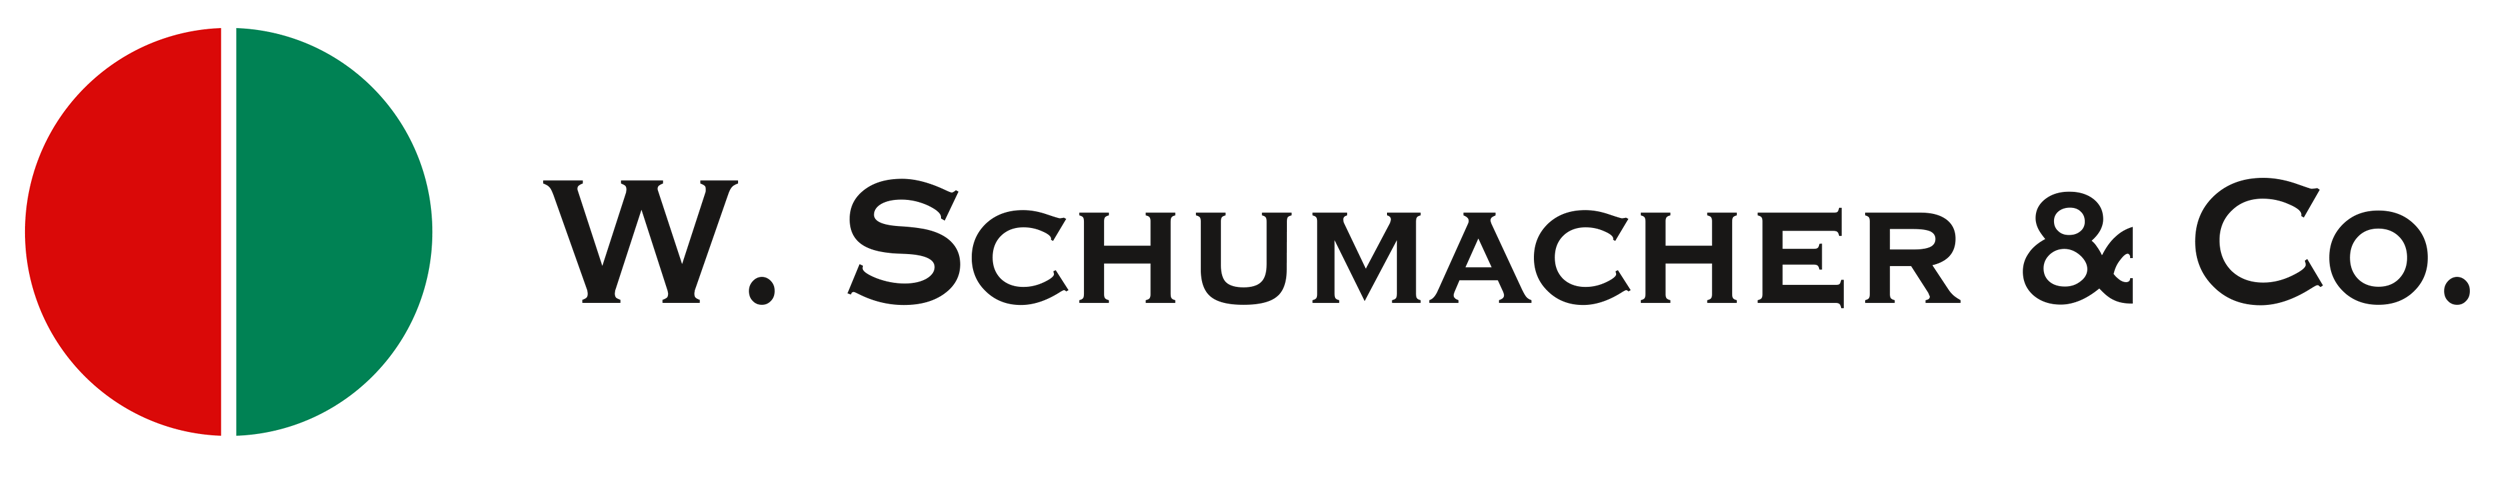 W. Schumacher & Co.